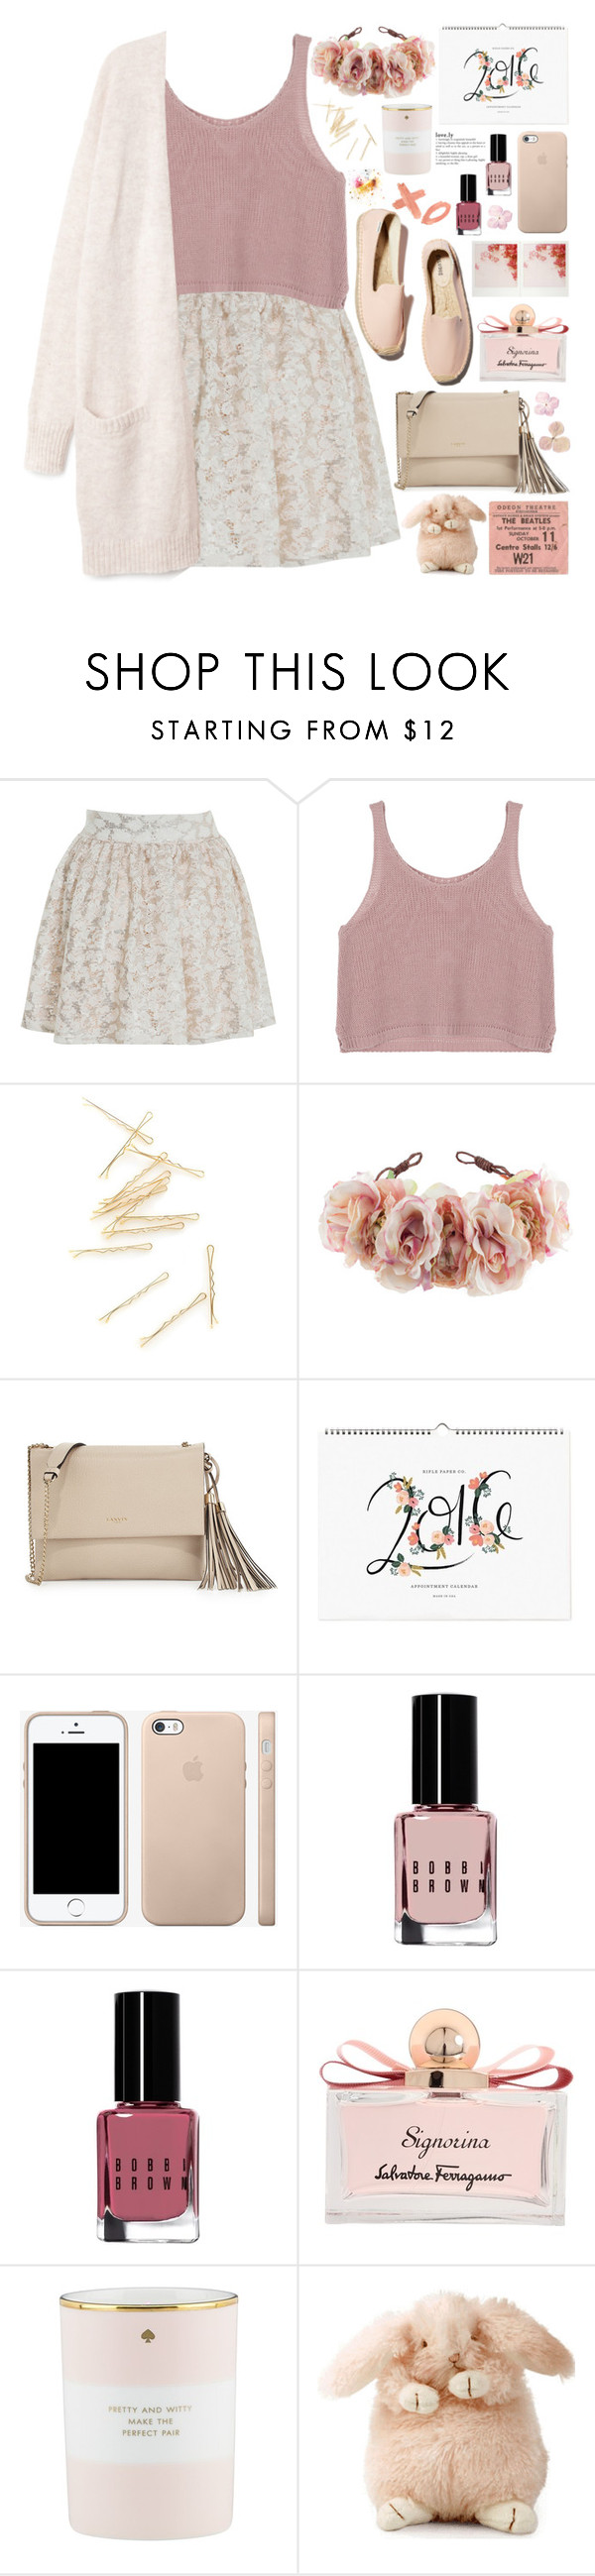 """2231. Enjoy the little things."" by chocolatepumma ❤ liked on Polyvore featuring Miss Selfridge, Soludos, Rock 'N Rose, Lanvin, Bobbi Brown Cosmetics, Salvatore Ferragamo and Kate Spade"